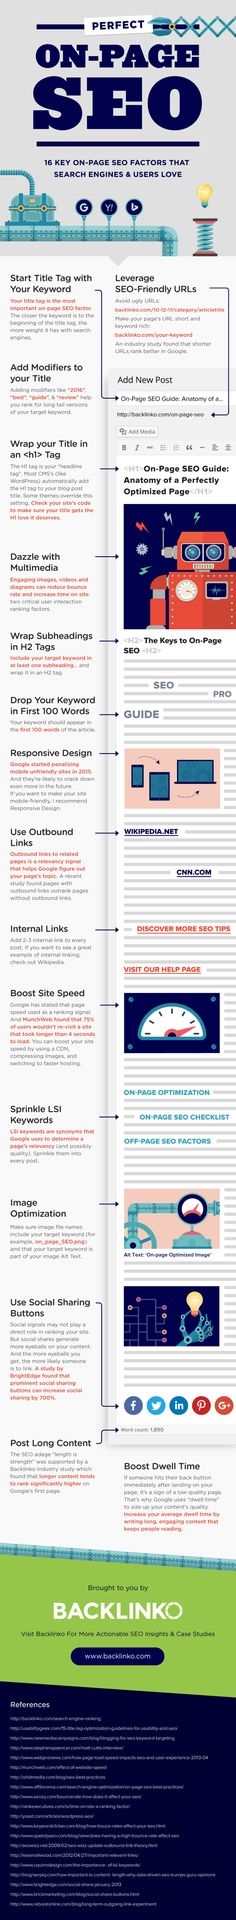 373 best SEO Tools images on Pinterest Seo tools, Digital - Google Spreadsheet Api Key